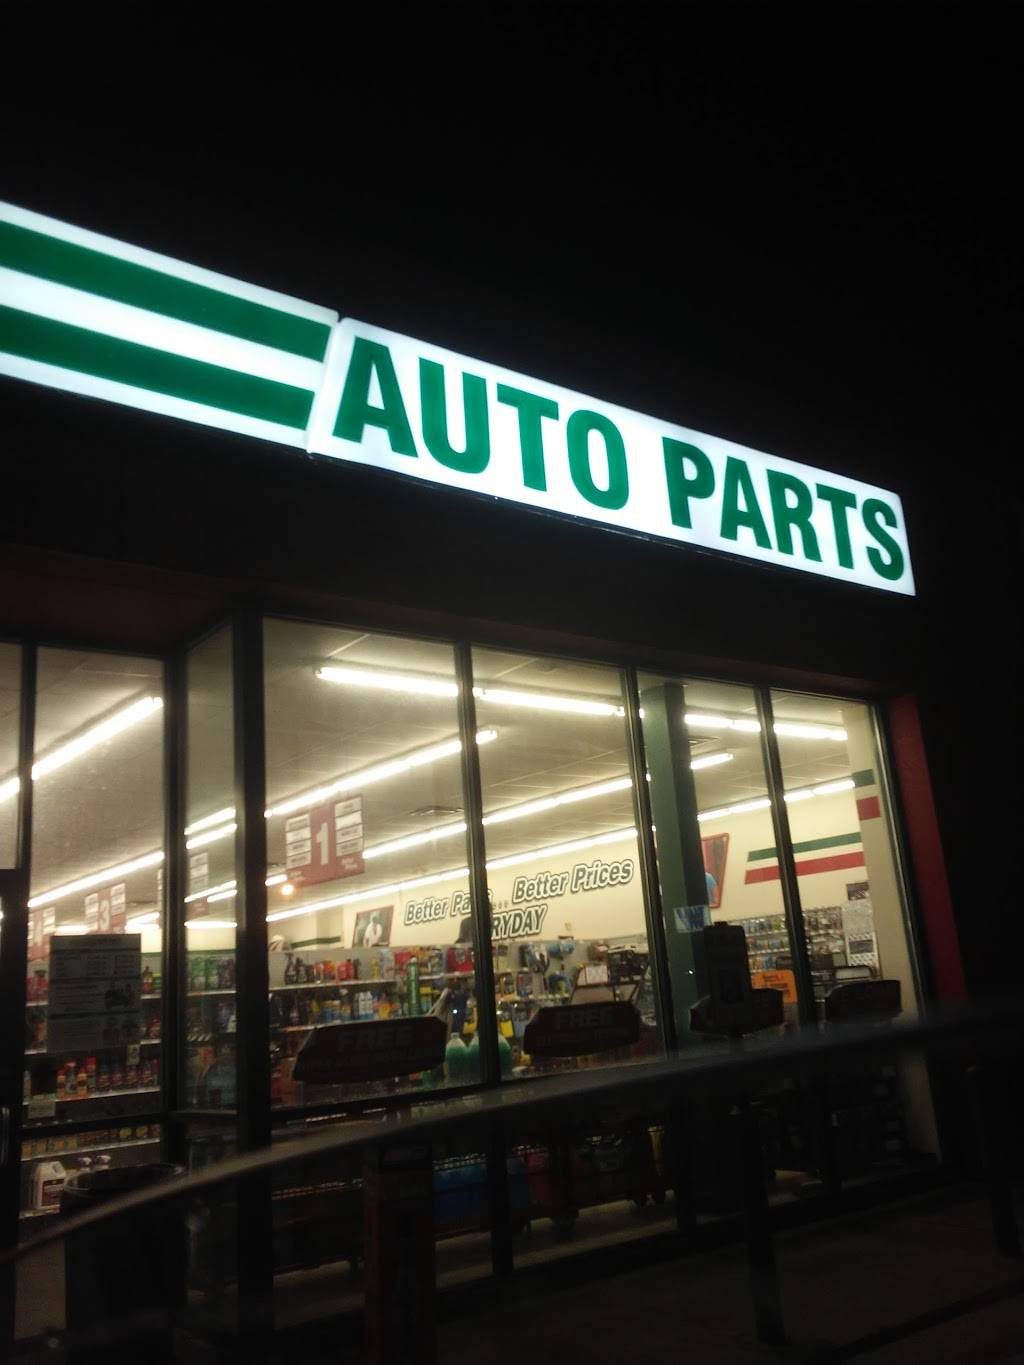 OReilly Auto Parts - electronics store  | Photo 7 of 8 | Address: 403 S Burnside Ave, Gonzales, LA 70737, USA | Phone: (225) 644-4114